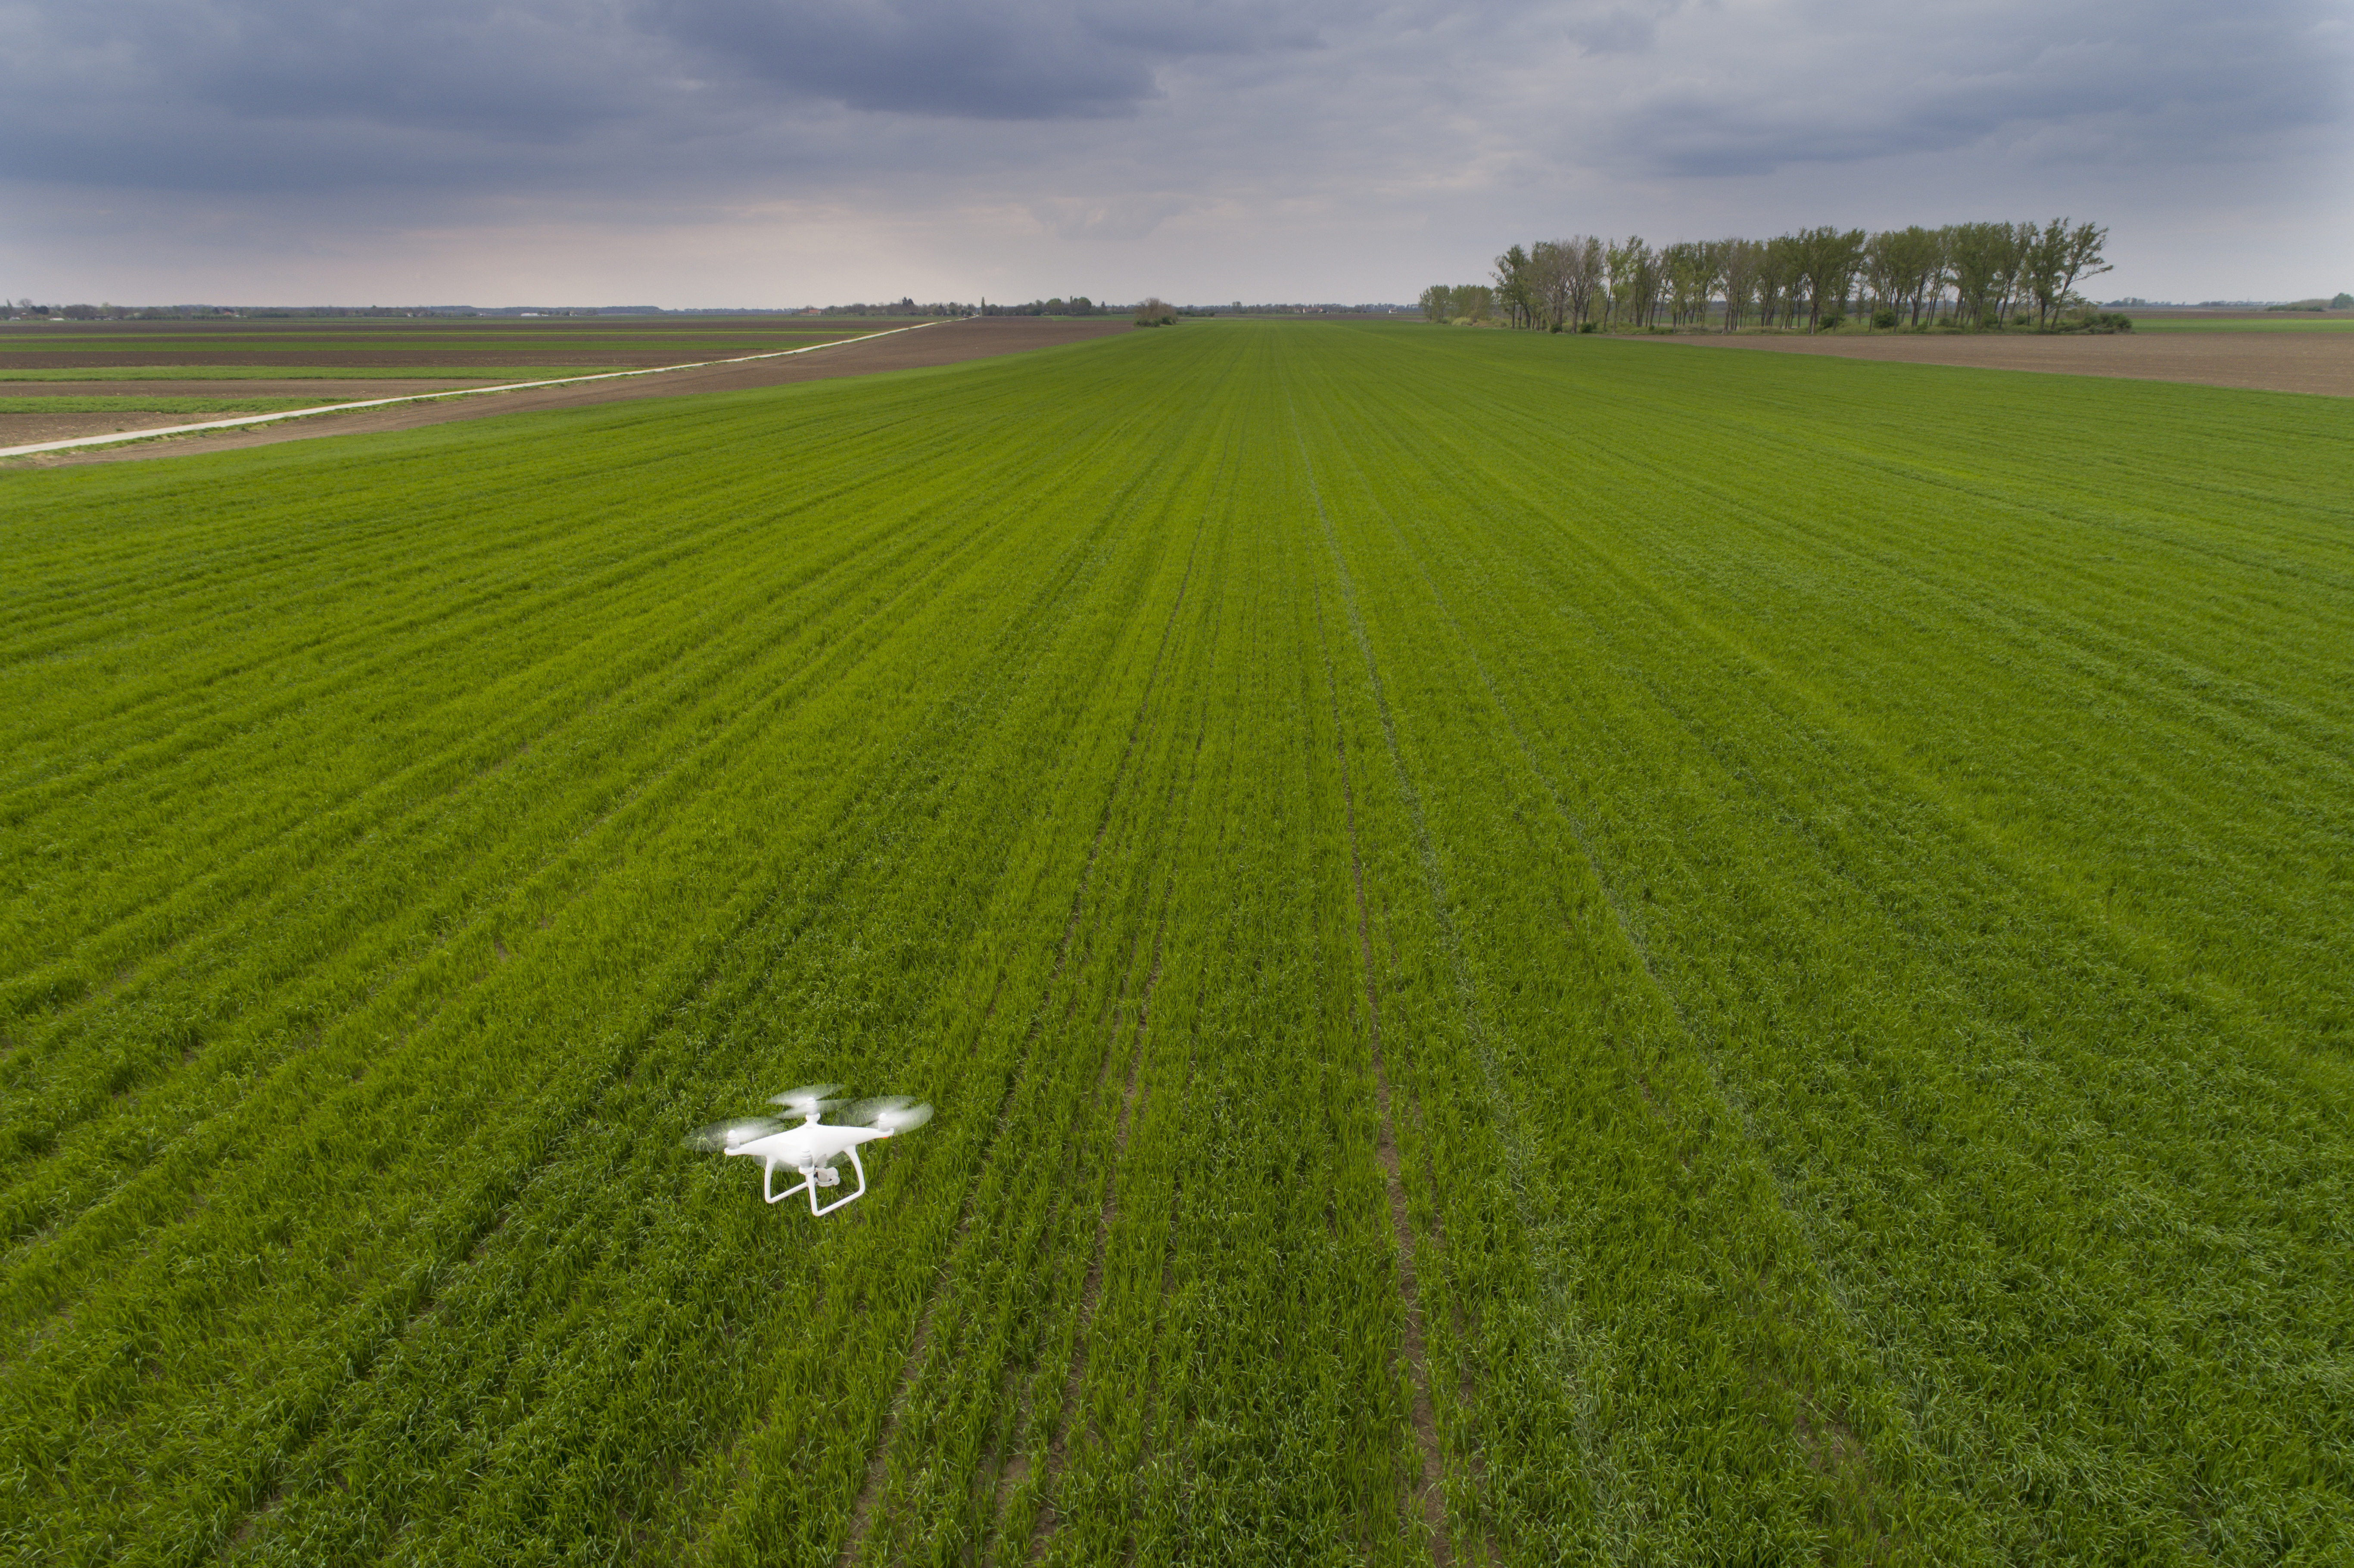 Drones: Farmers Are Looking for True Autonomy Now That the Hype is Over -  AgFunderNews